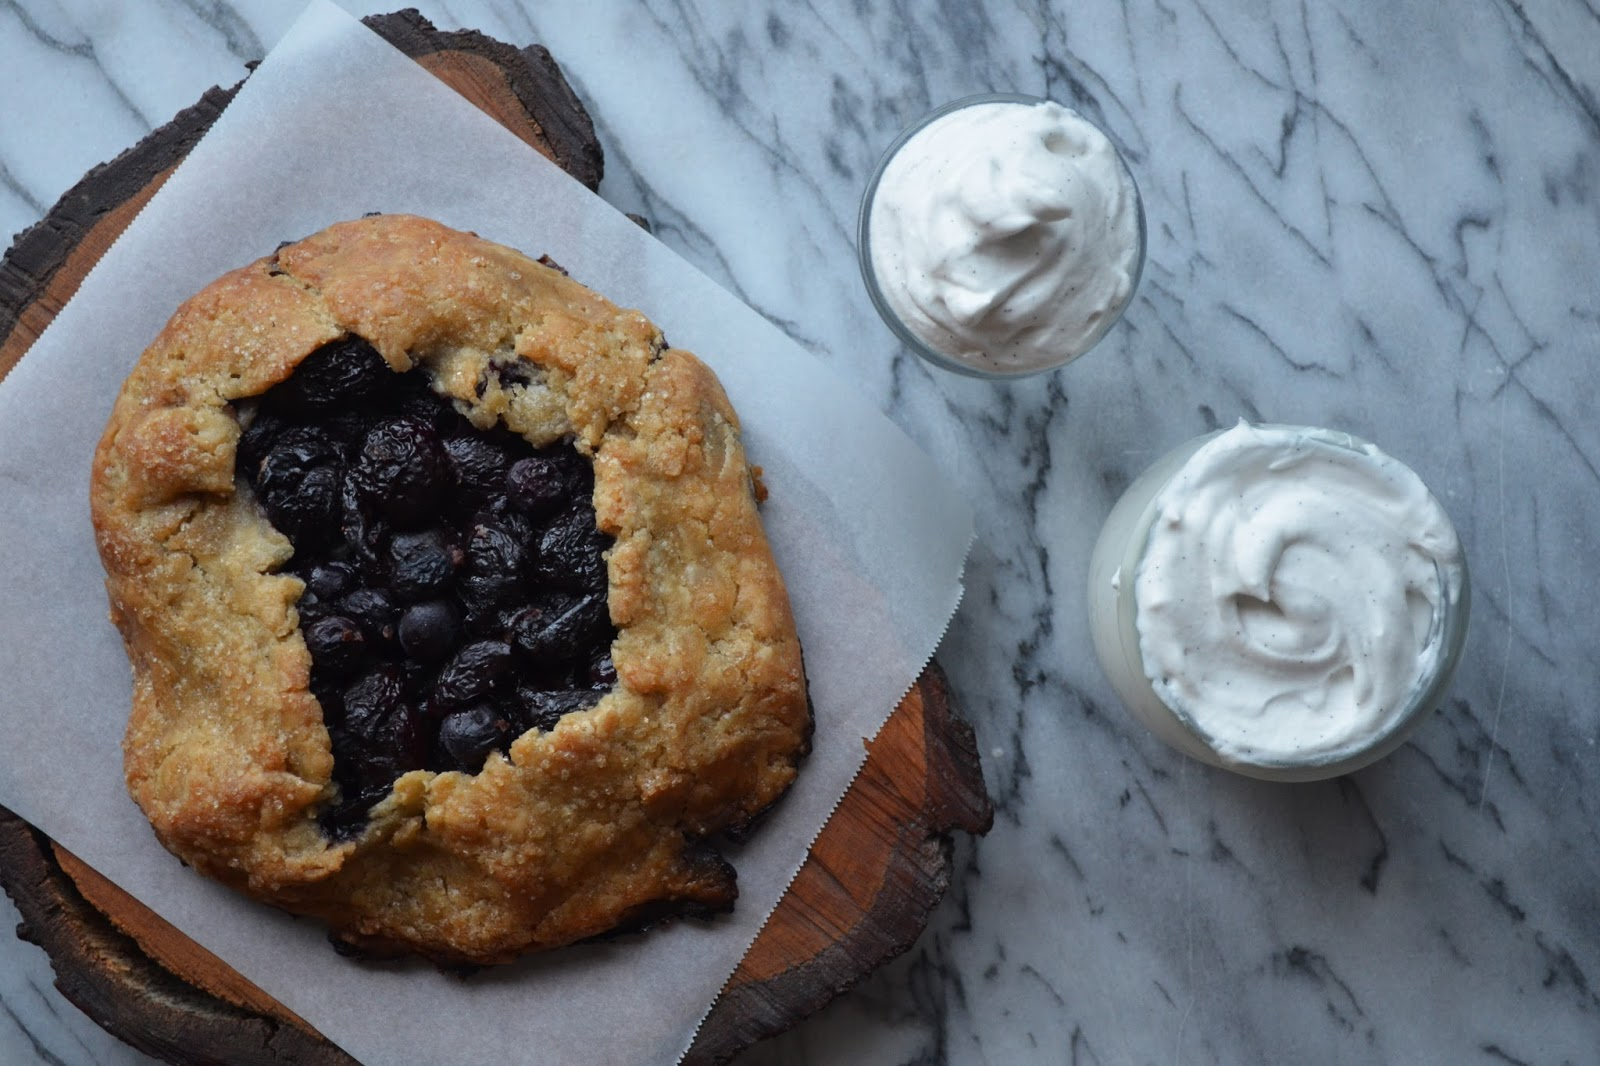 Bourbon Vanilla Cherry Blueberry Pie & Vanilla Bean Whipped Coconut Cream